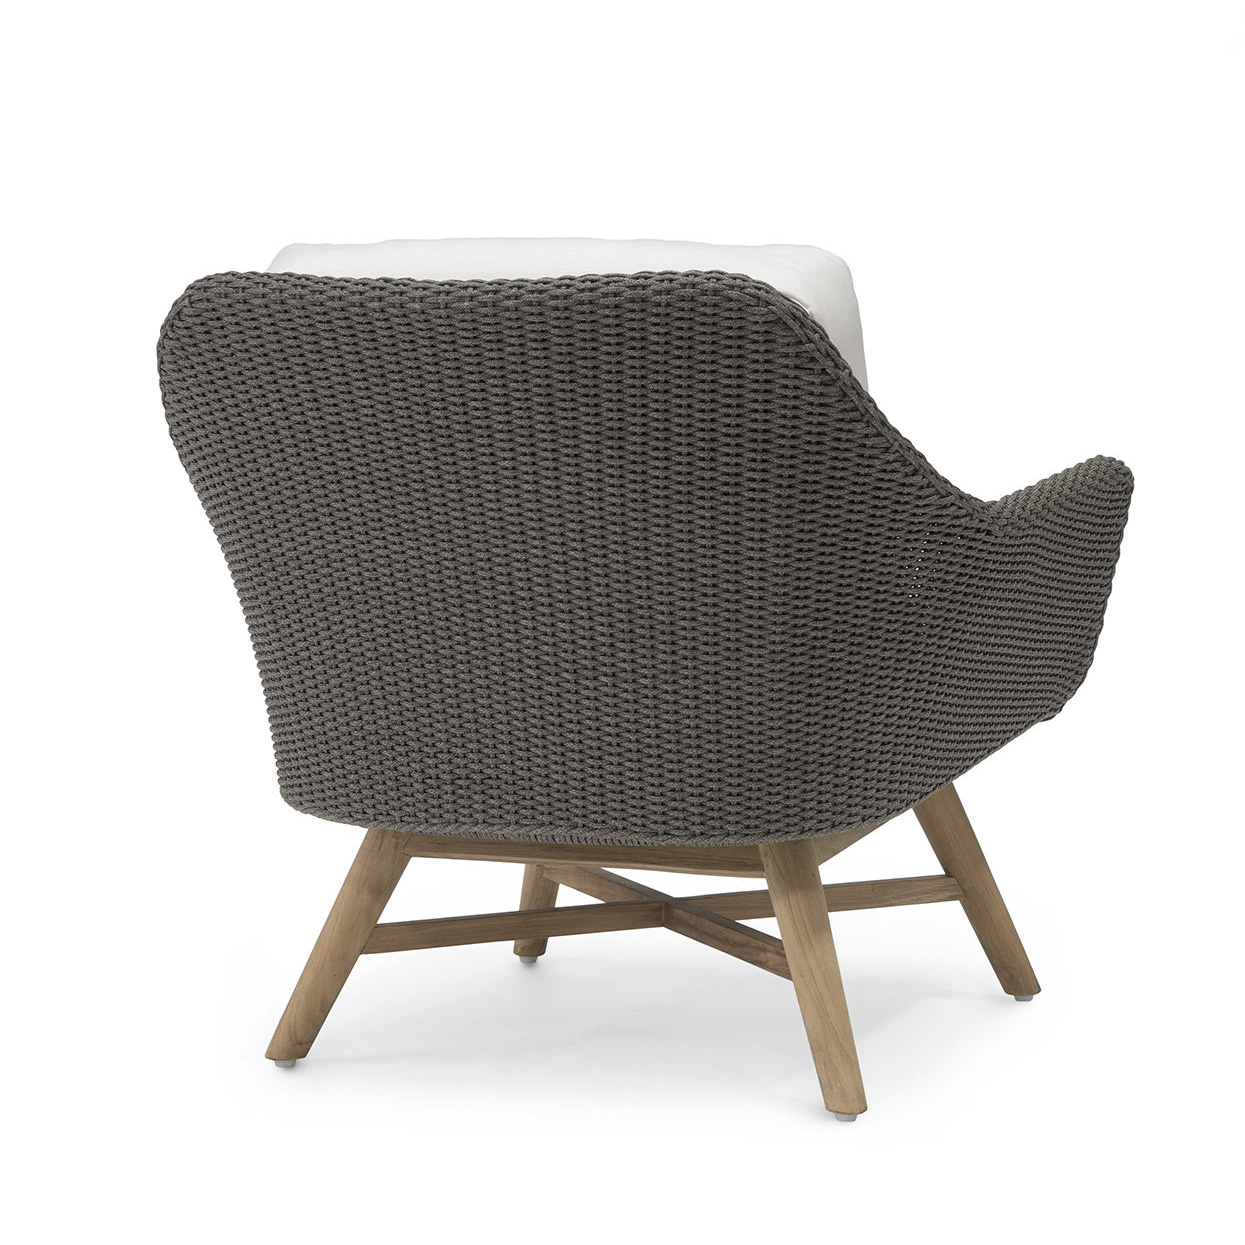 San-Remo-Outdoor-Lounge-Chair-2